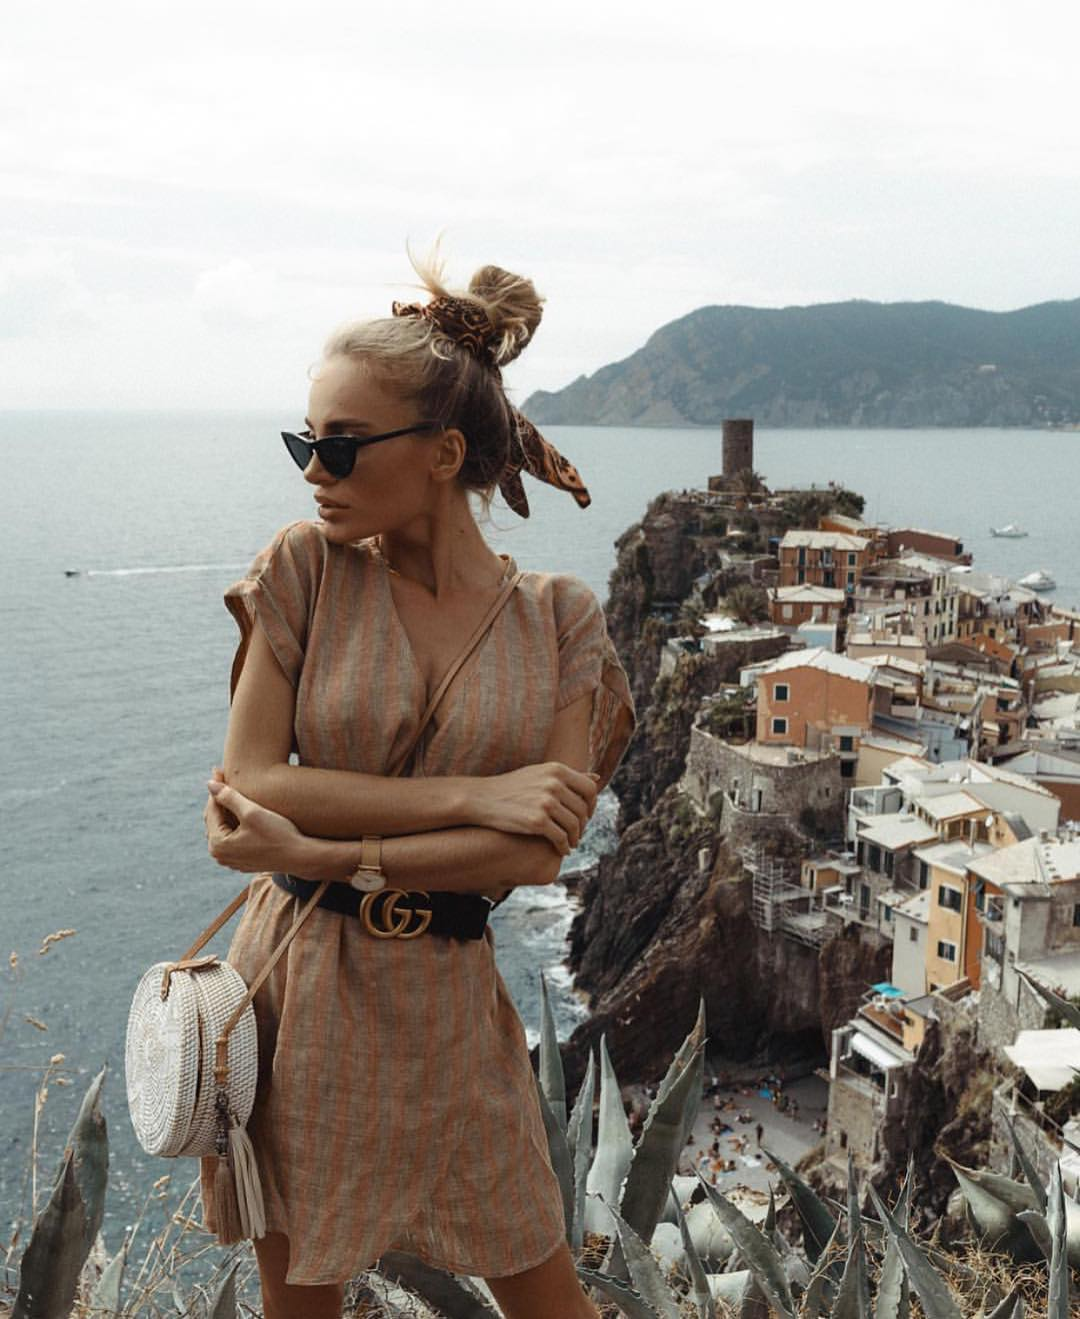 Traveling Style: Linen Wrap Dress For Summer In Italy 2019